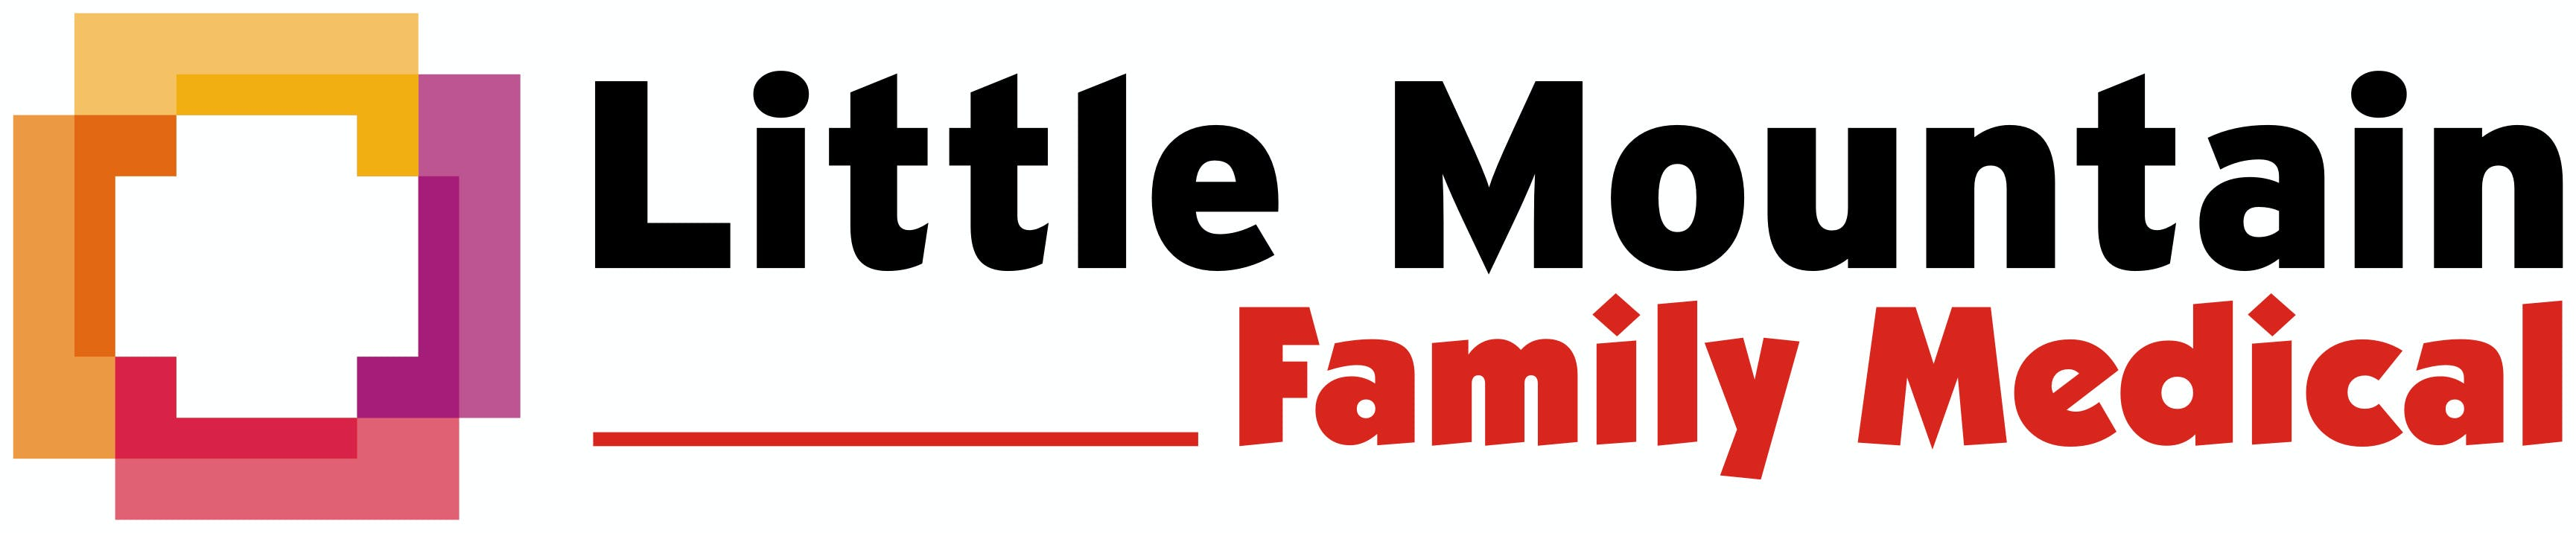 Little Mountain Family Medical Logo